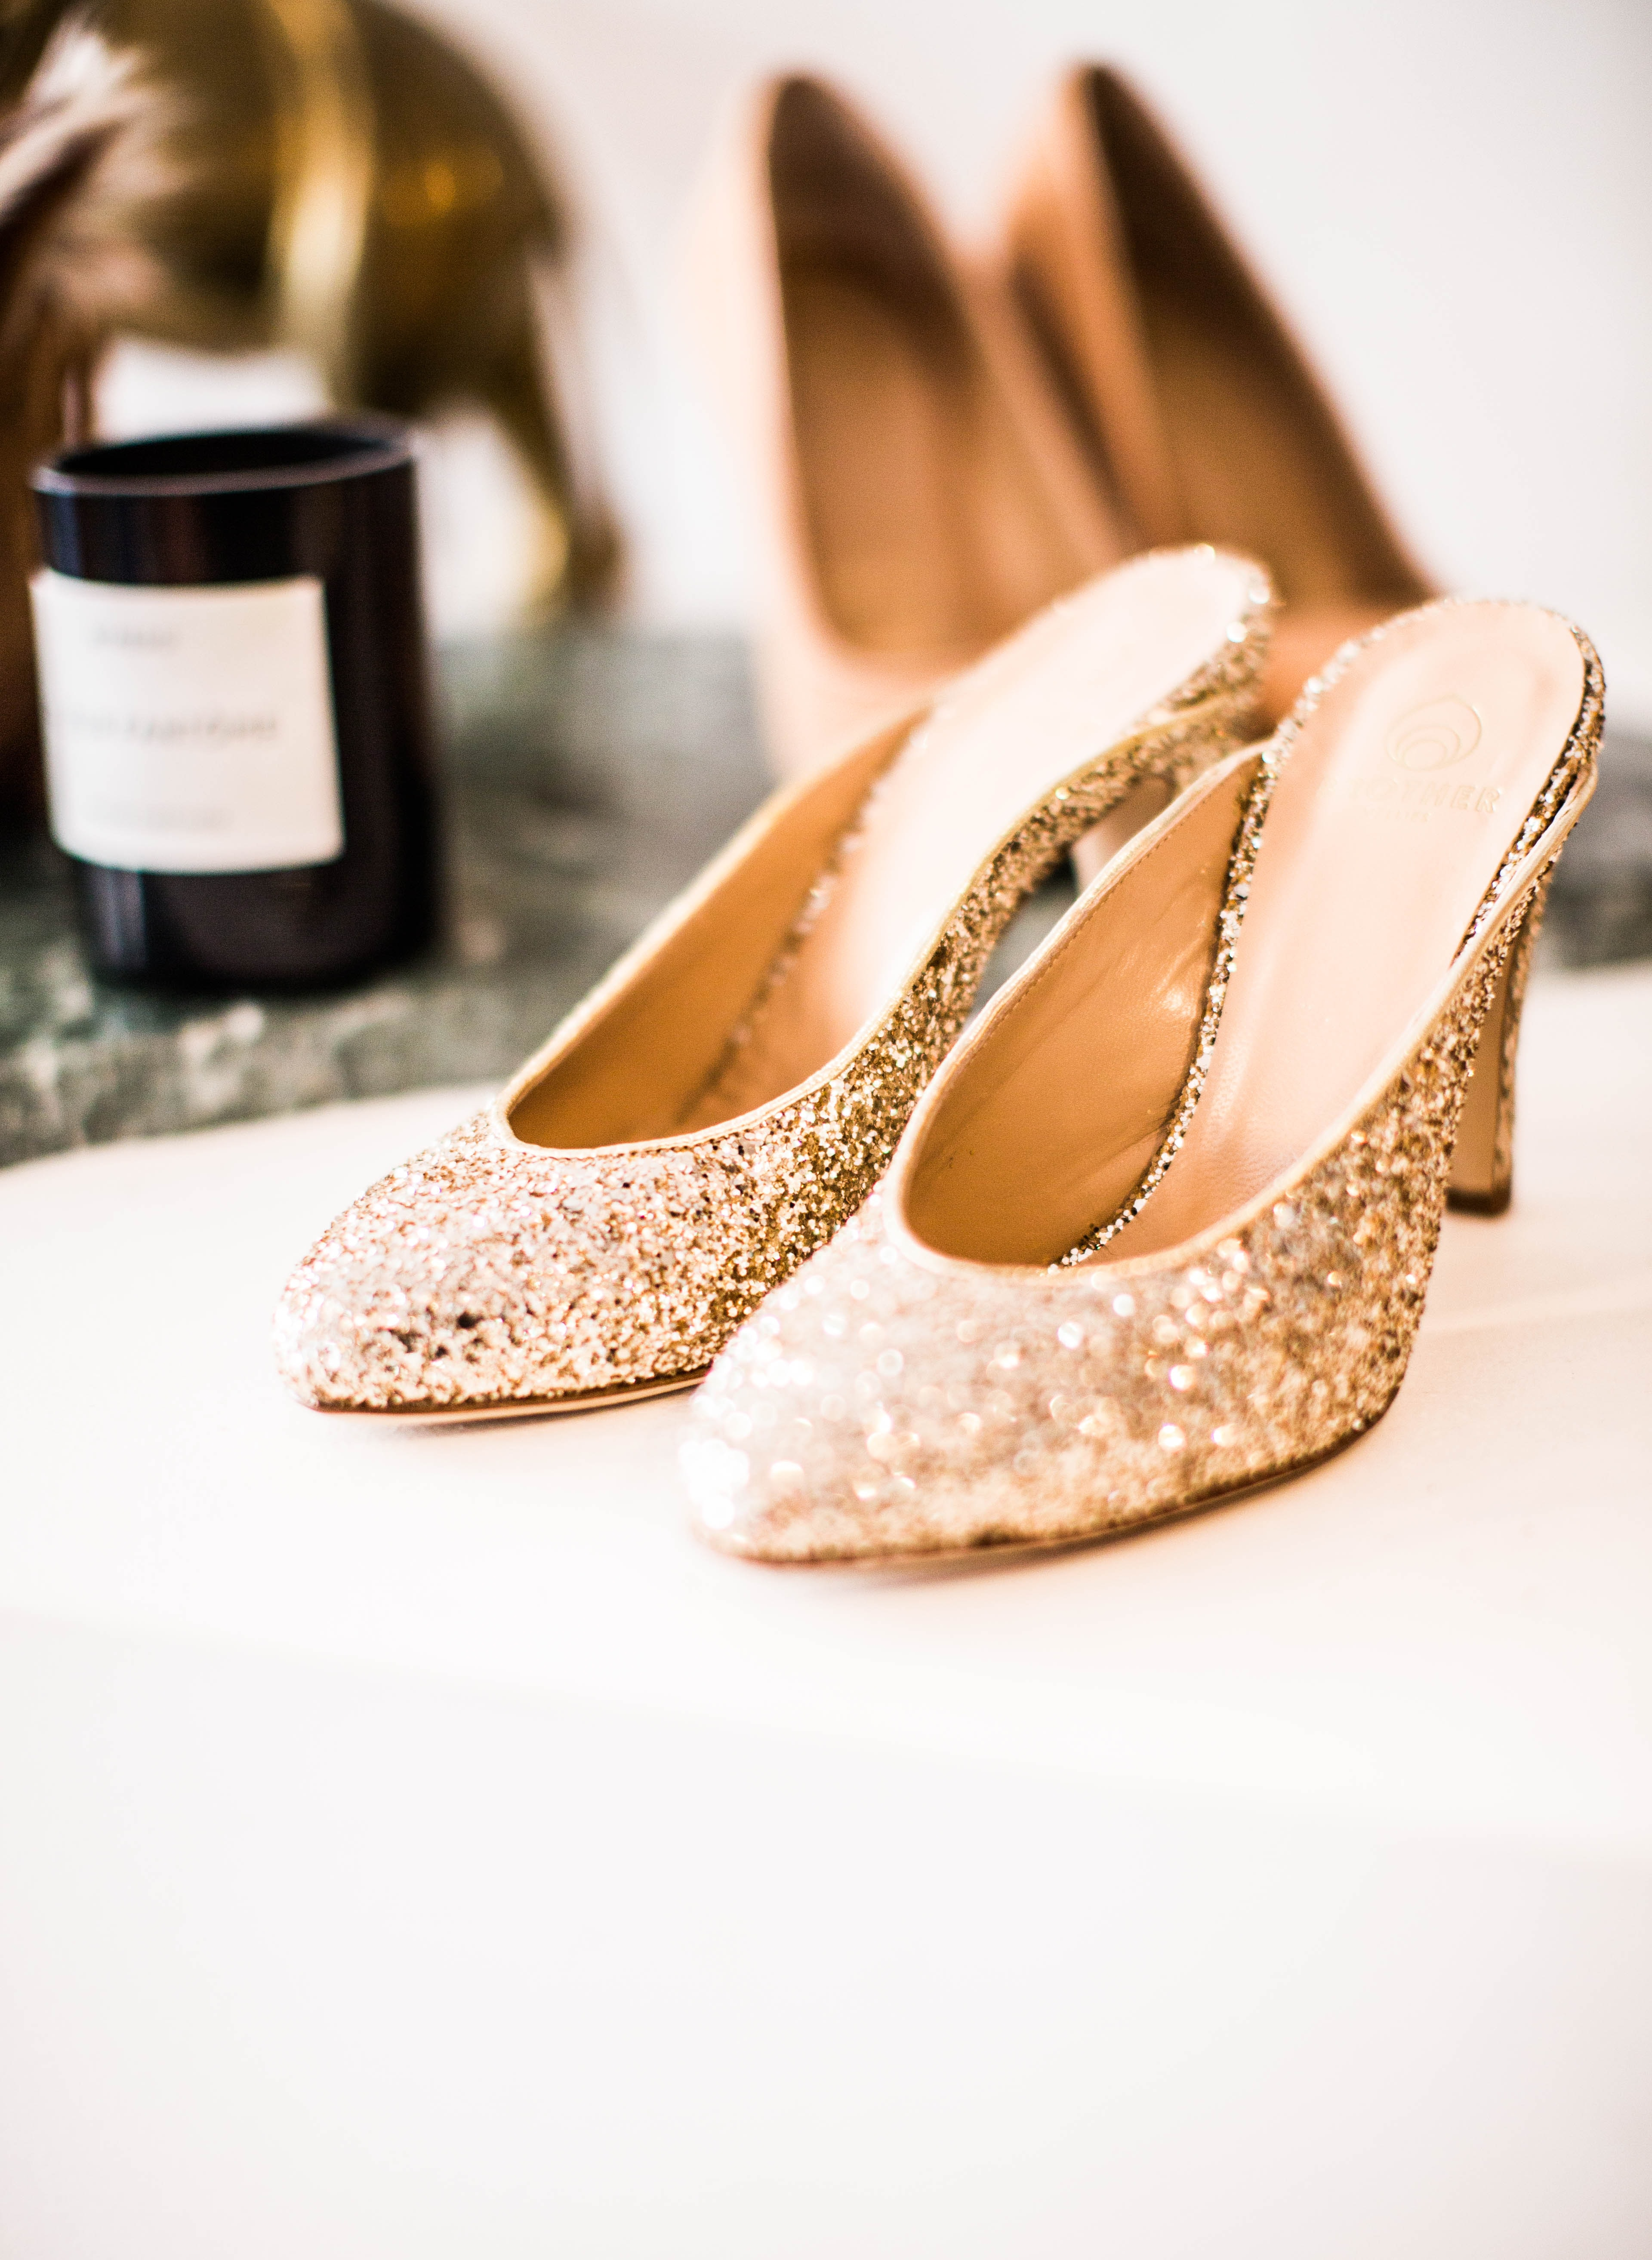 tilt-shift lens photography of glittered gold sandals